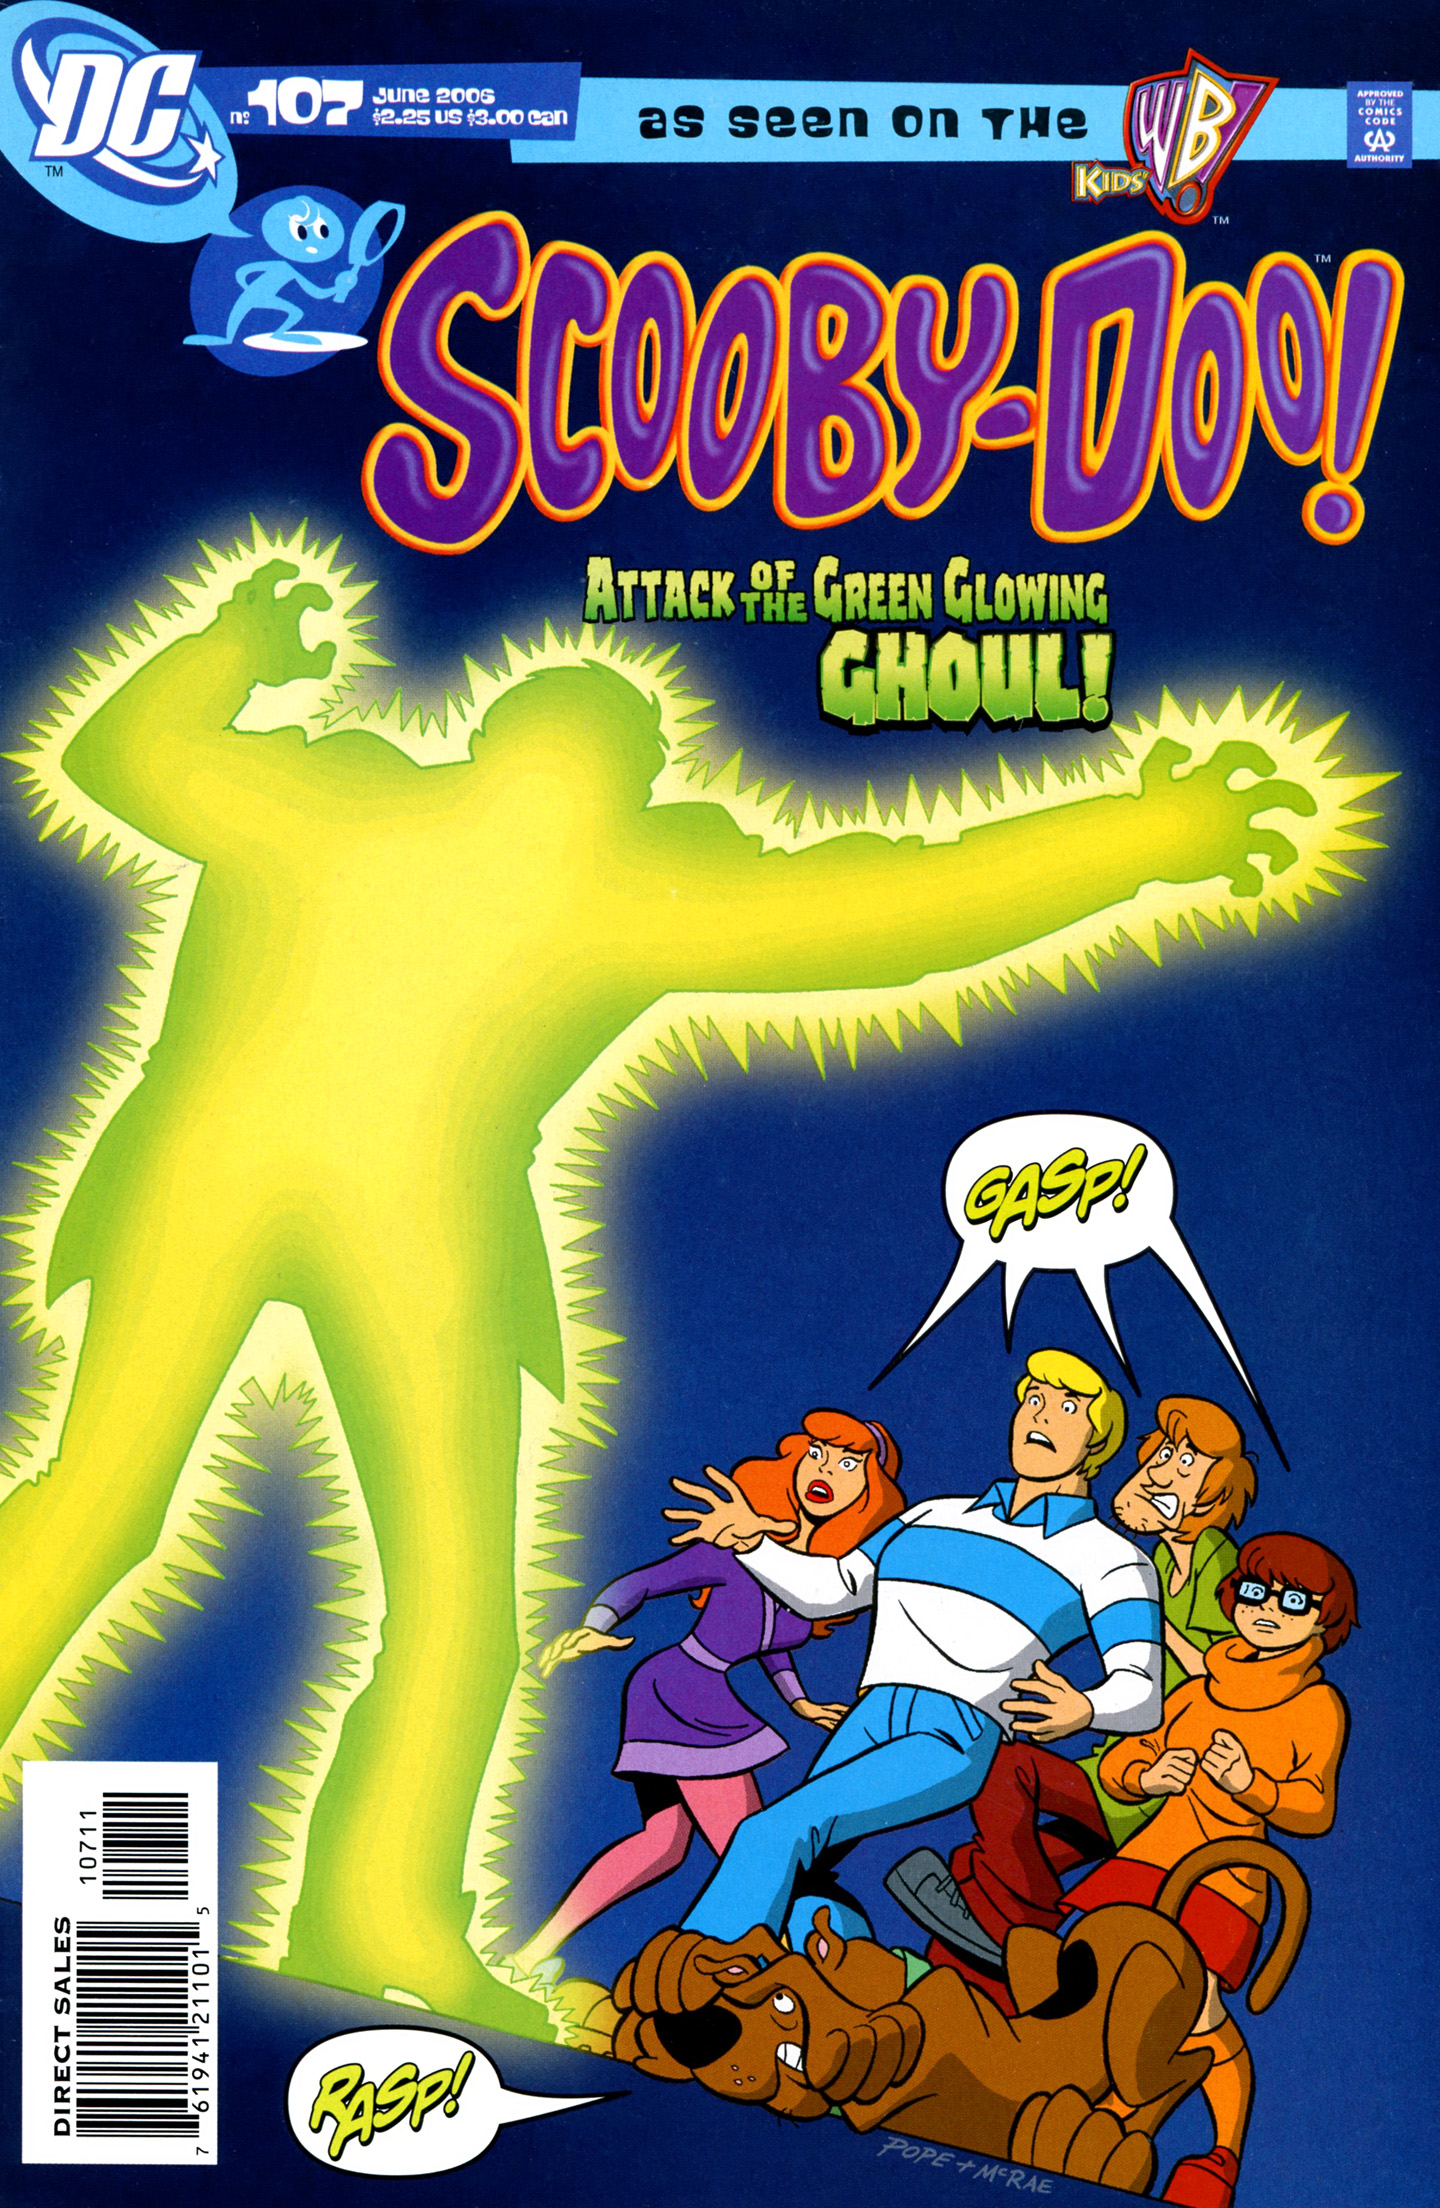 Read online Scooby-Doo (1997) comic -  Issue #107 - 1